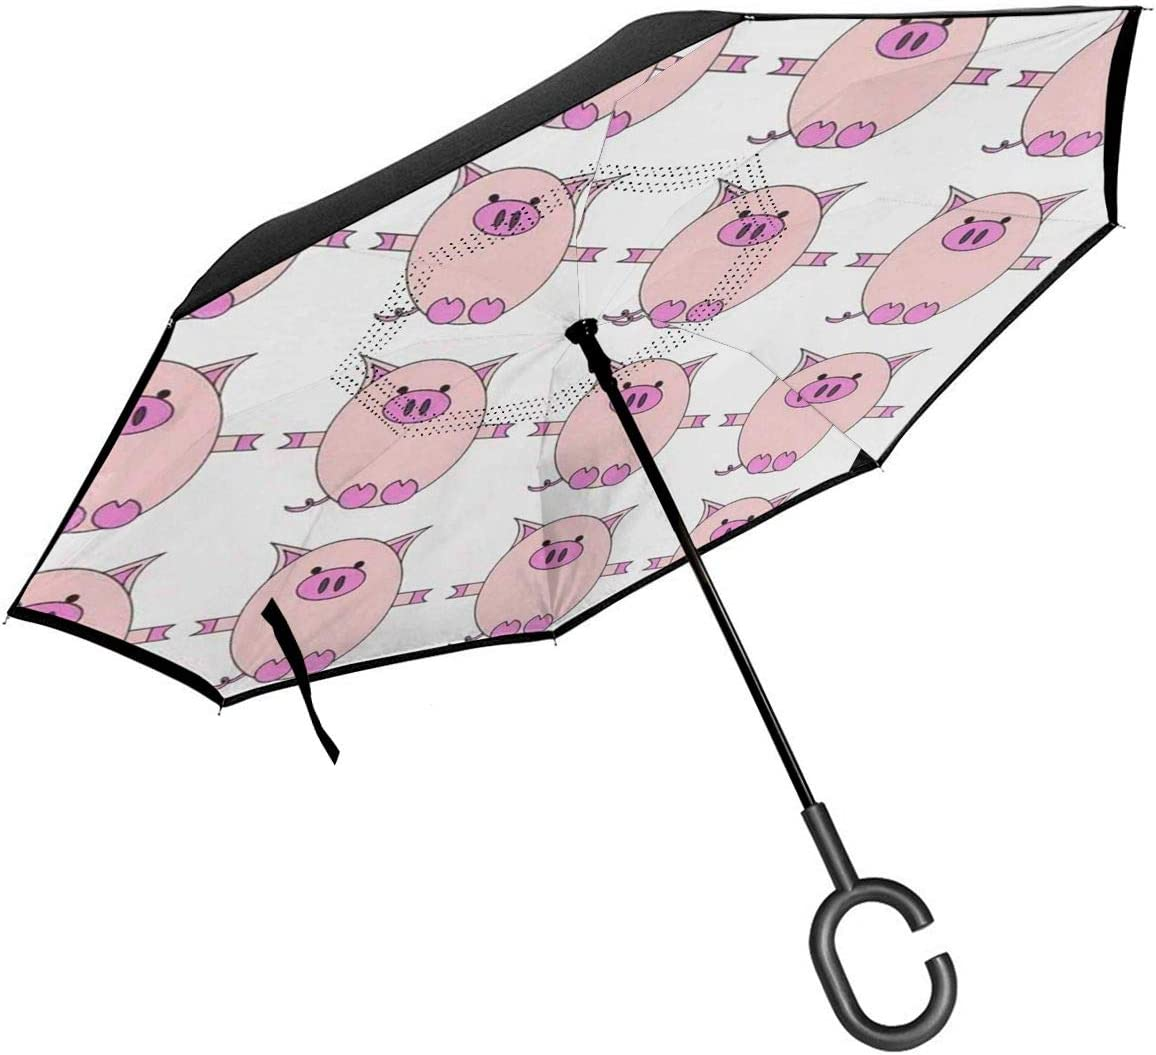 PYFXSALA Cute Pink Pig Windproof Inverted Umbrella Double Layer UV Protection Folding Reverse Umbrella for Car Rain Outdoor Self Stand Upside Down with C-Shaped Handle